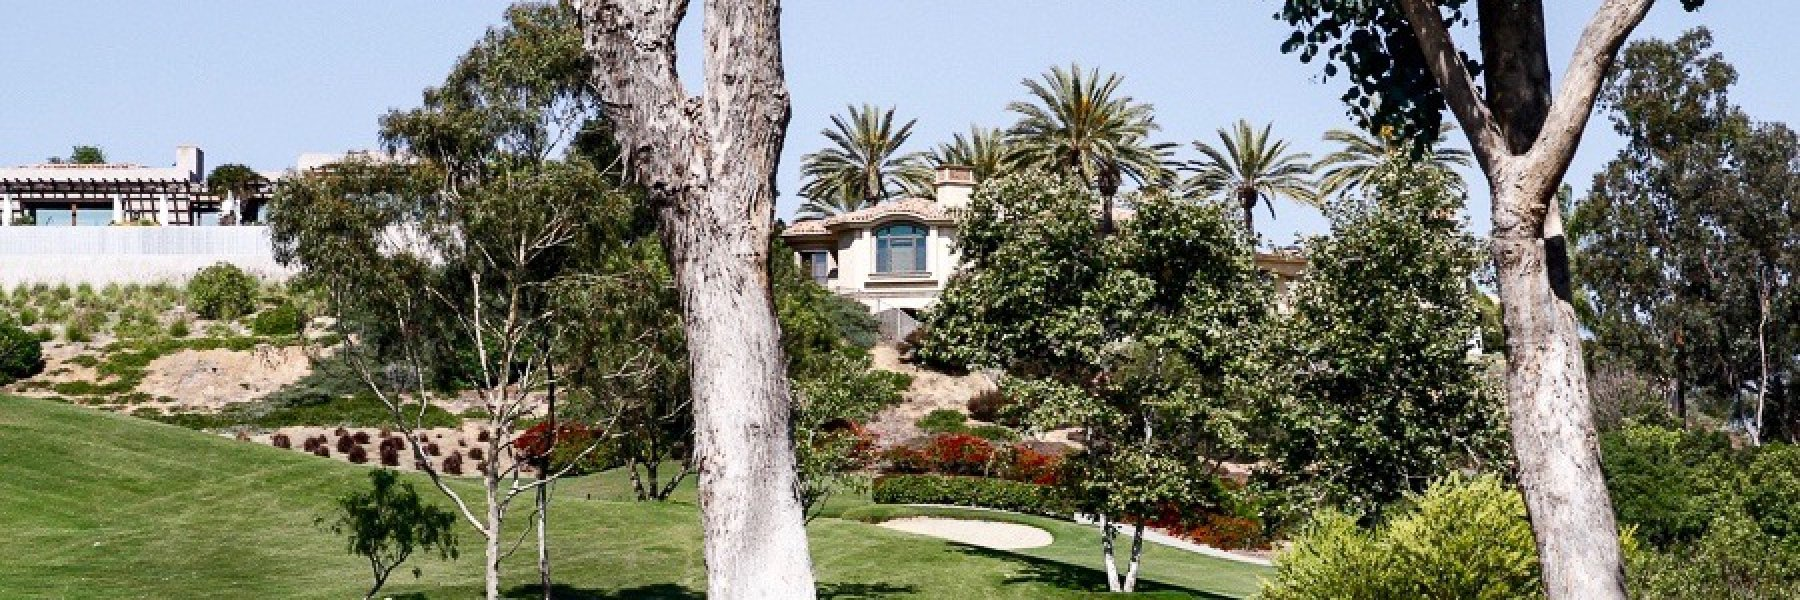 Rancho Valencia is a community of homes in San Diego California